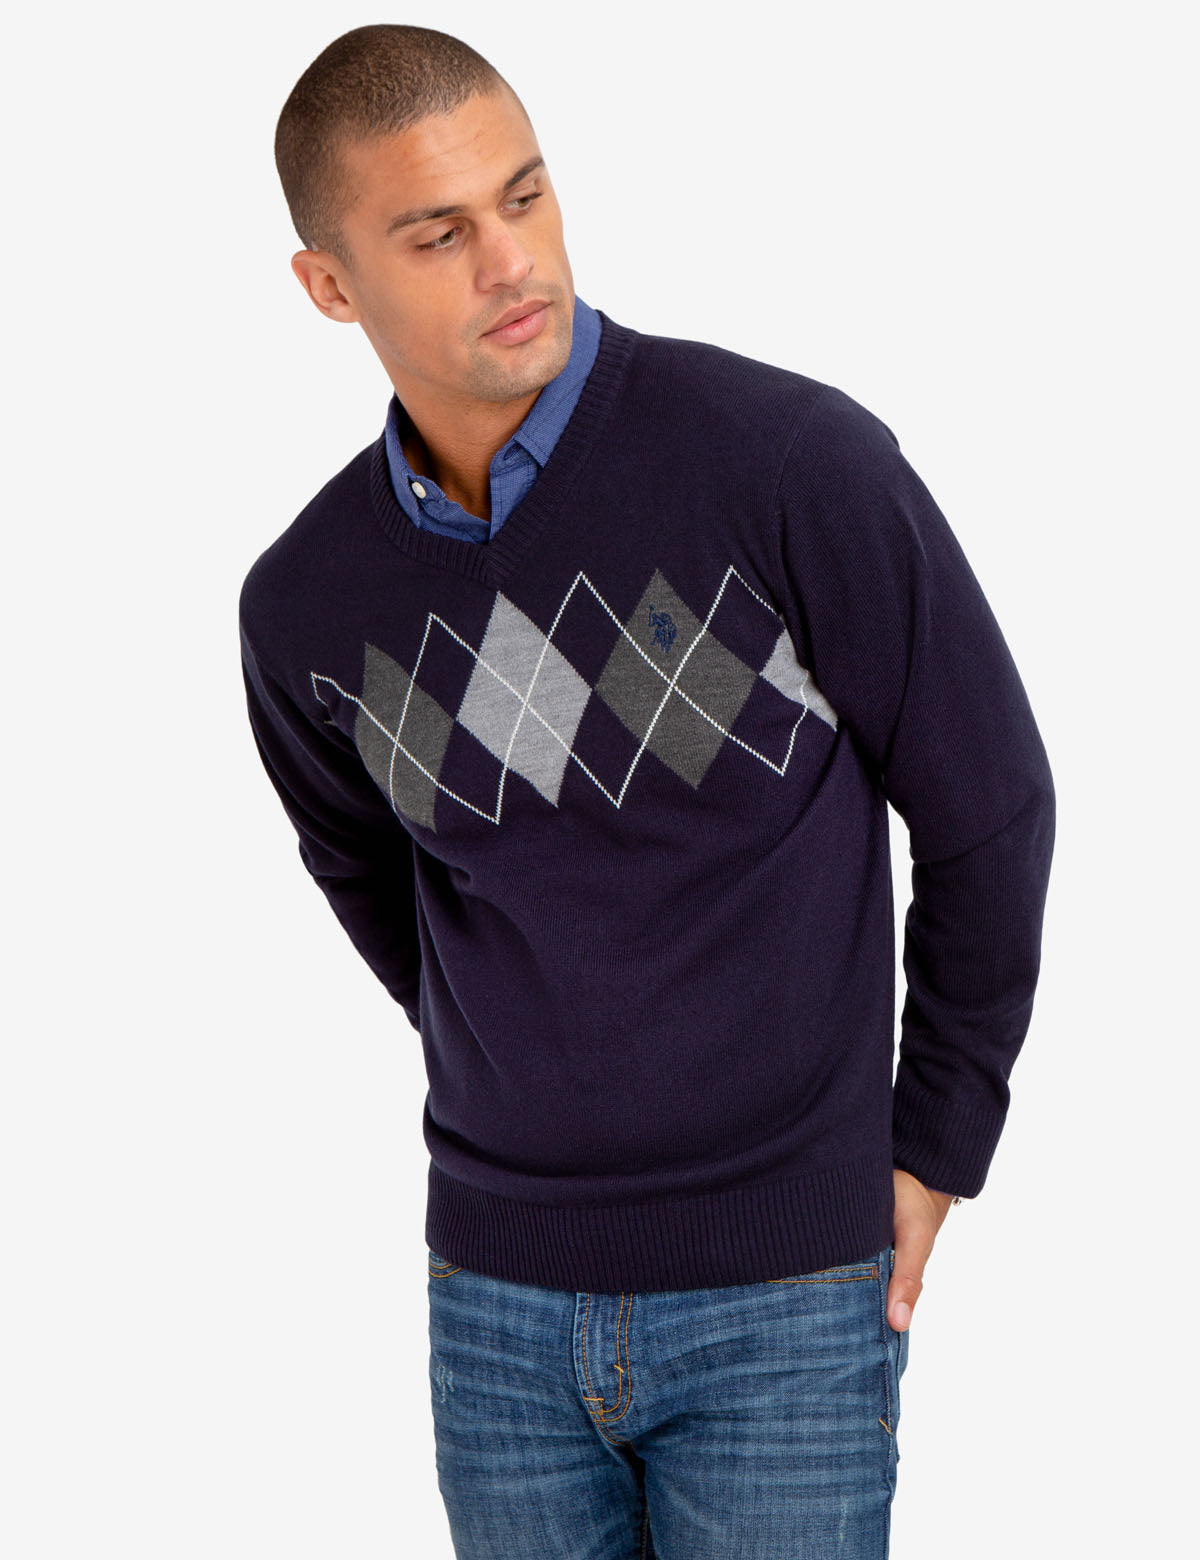 CREW NECK DIAMOND DESIGN SWEATER